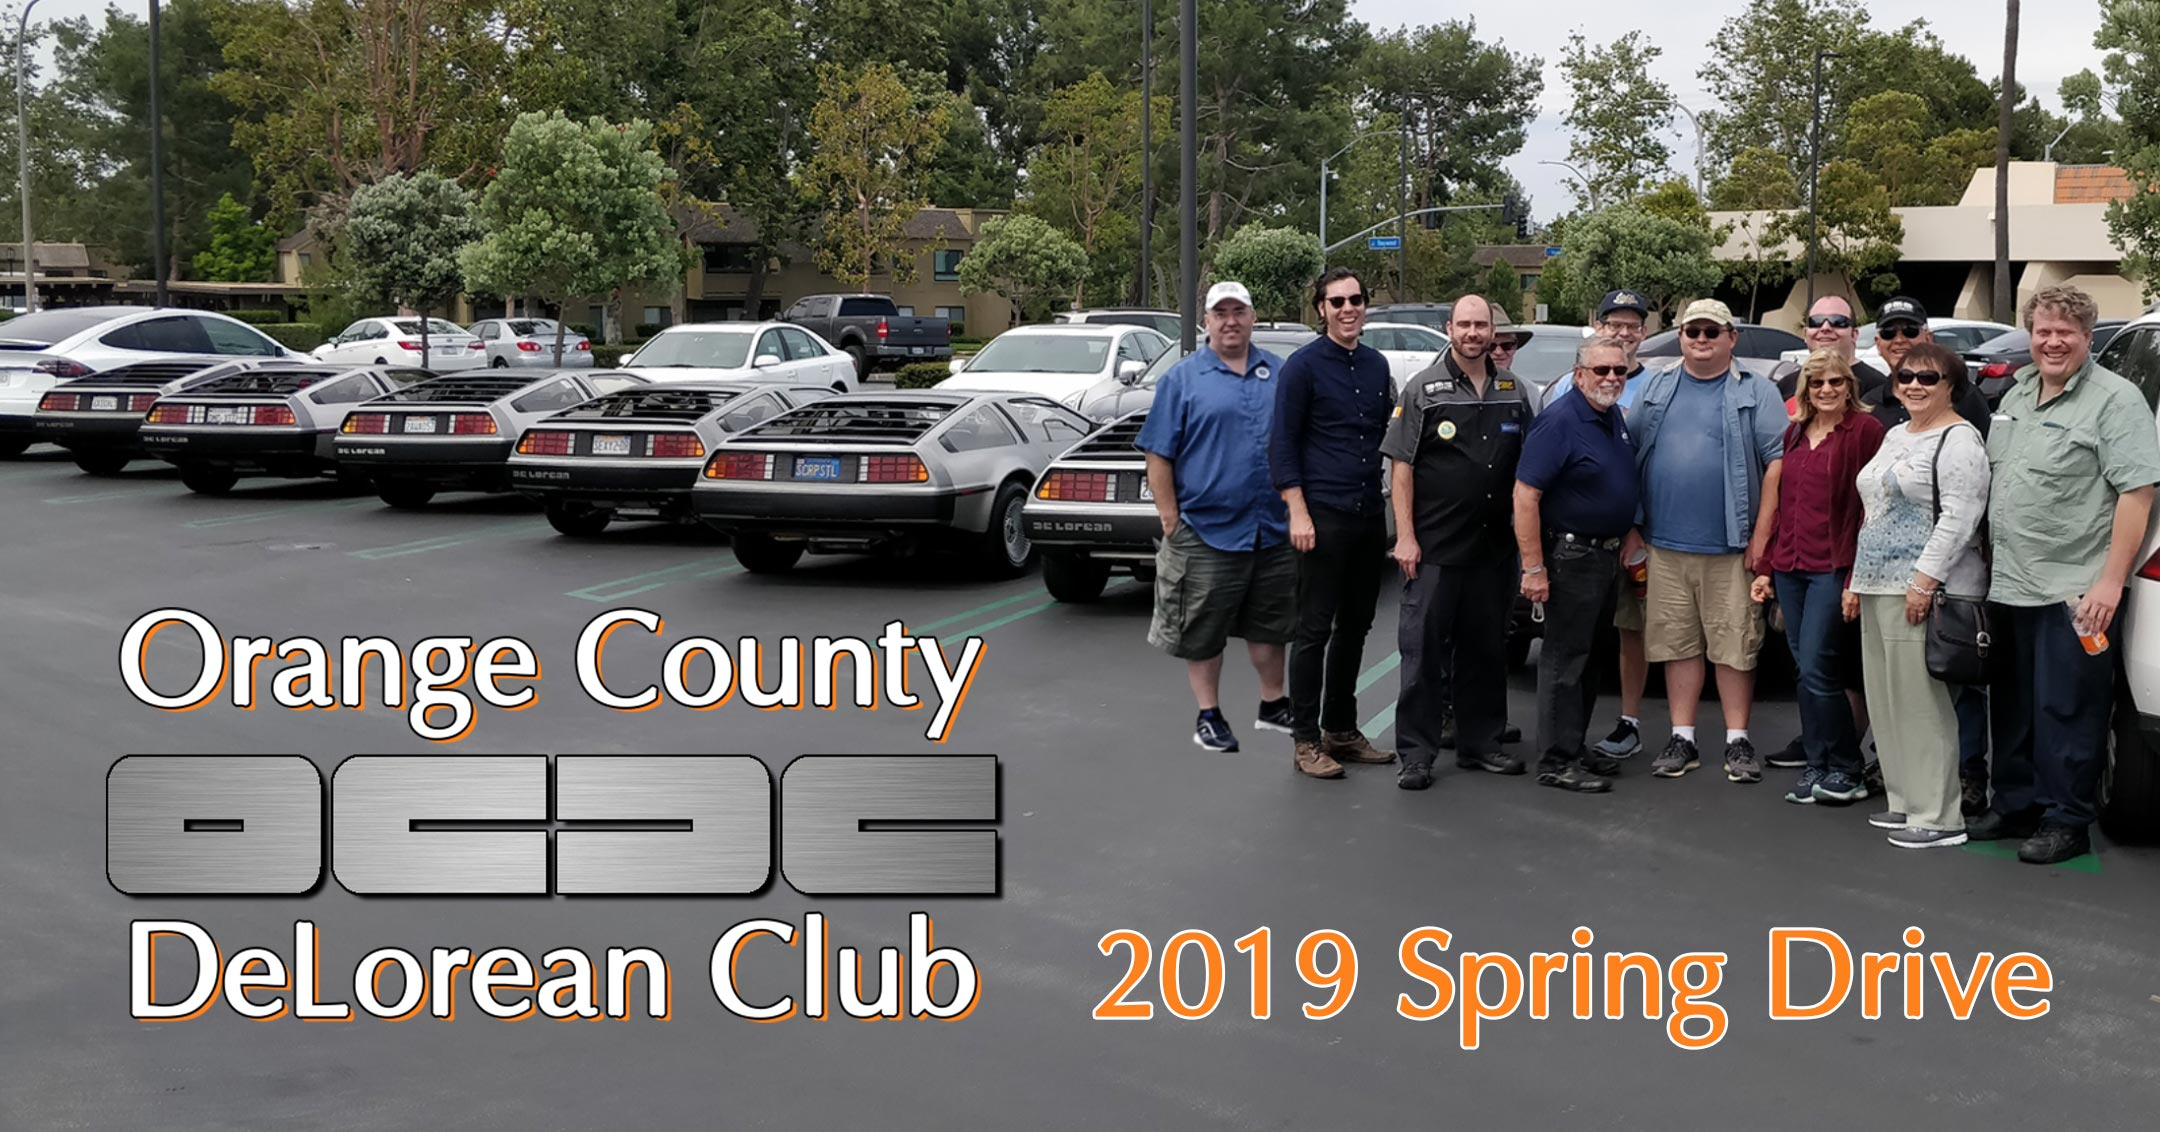 OCDC 2019 Spring Drive | Orange County DeLorean Club